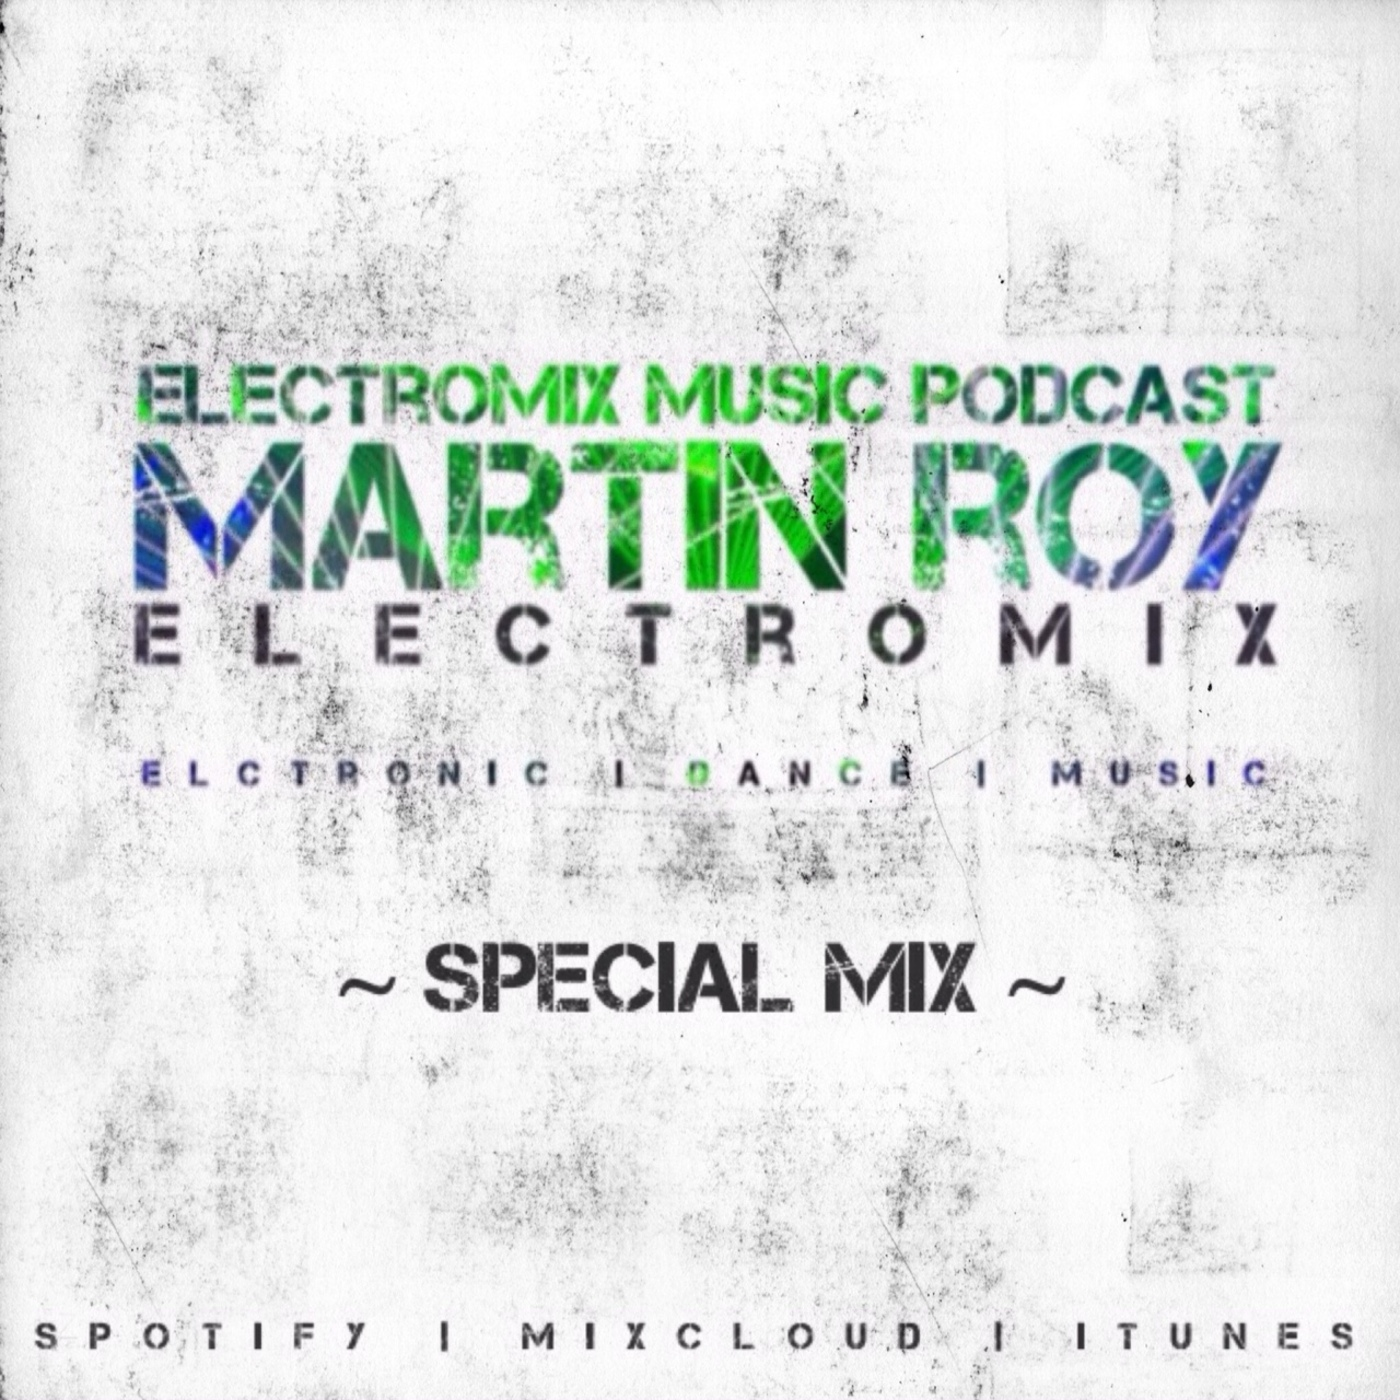 Electromix Music Podcast (Special Mix)